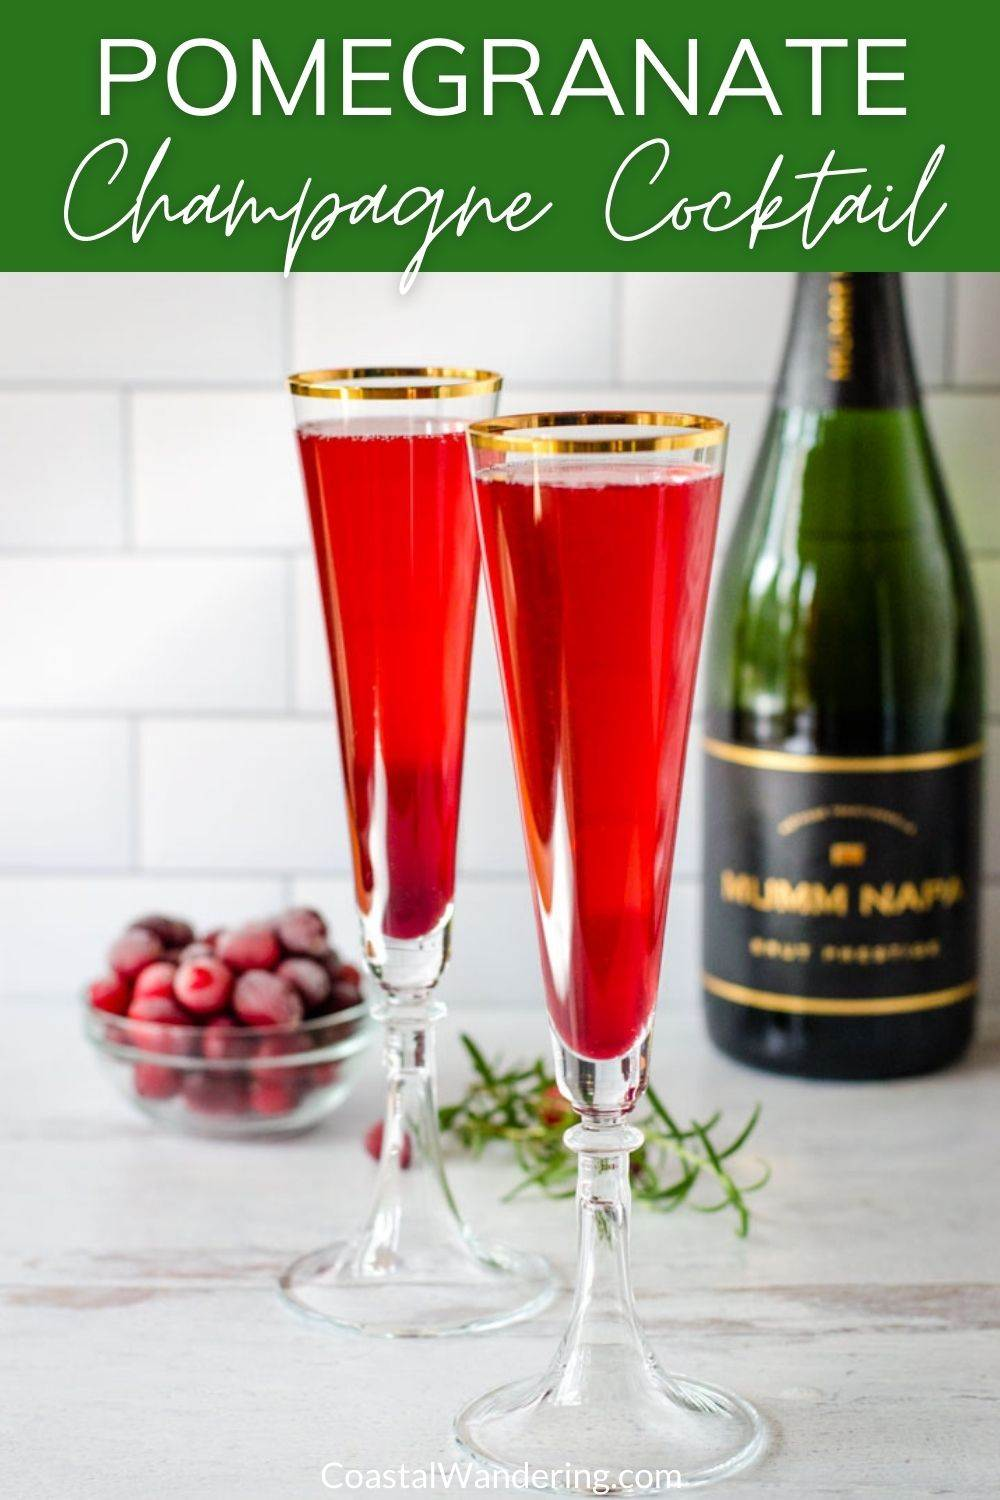 Pomegranate Mimosa Champagne Cocktail